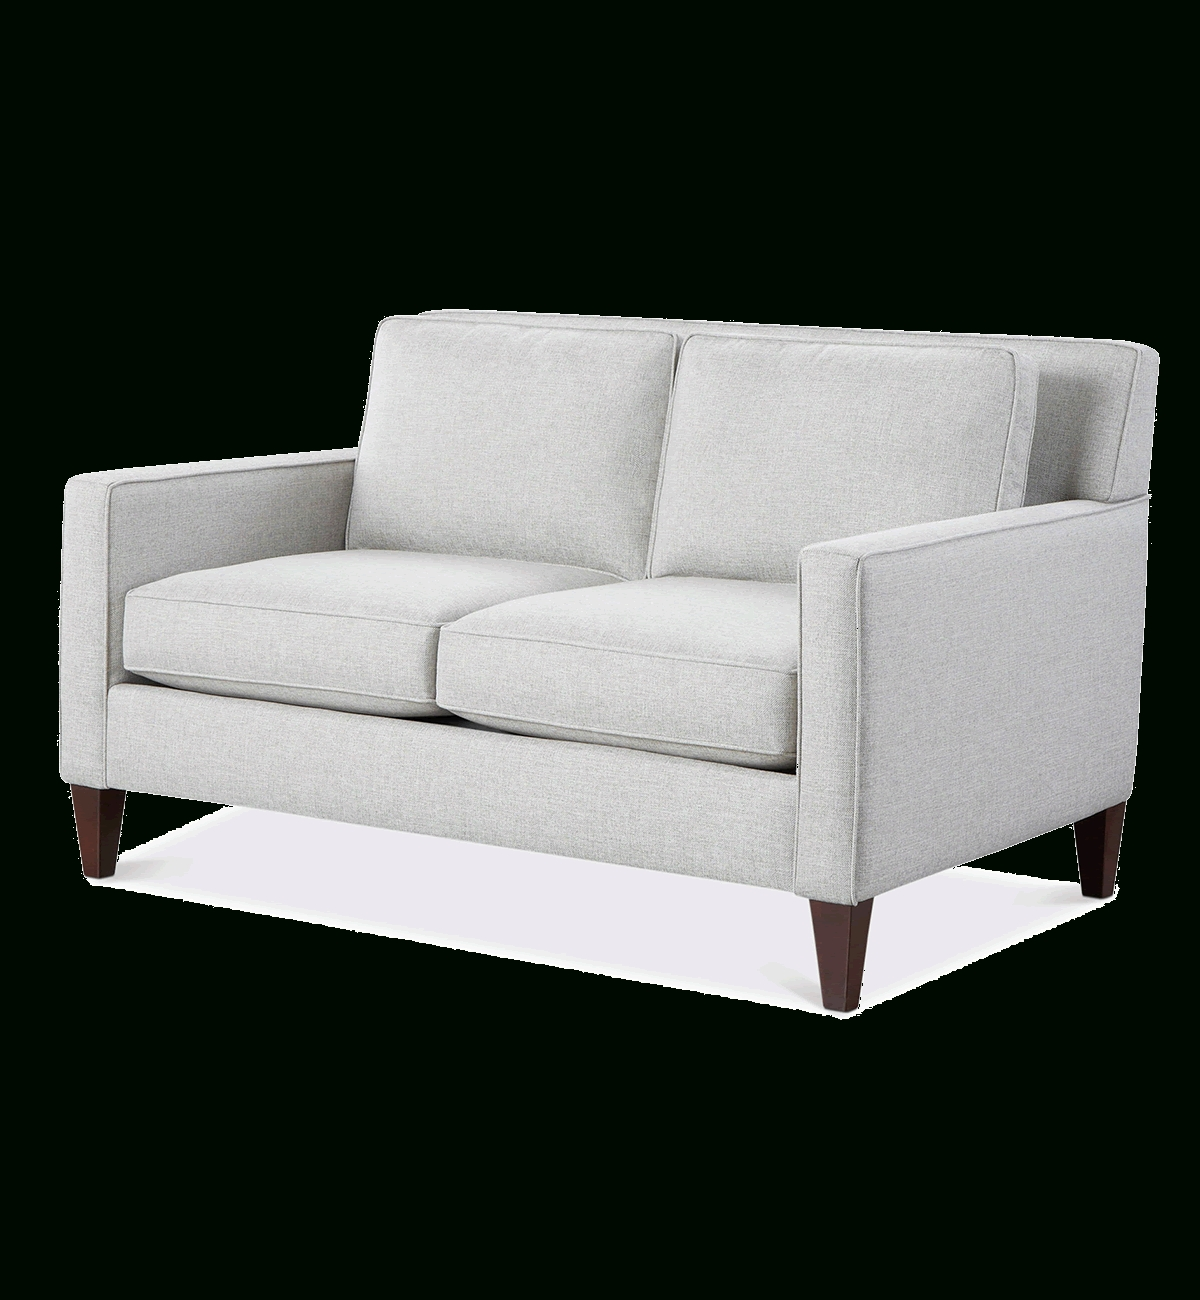 Current Fabric Sofas Within Fabric Couches And Sofas – Macy's (View 11 of 20)